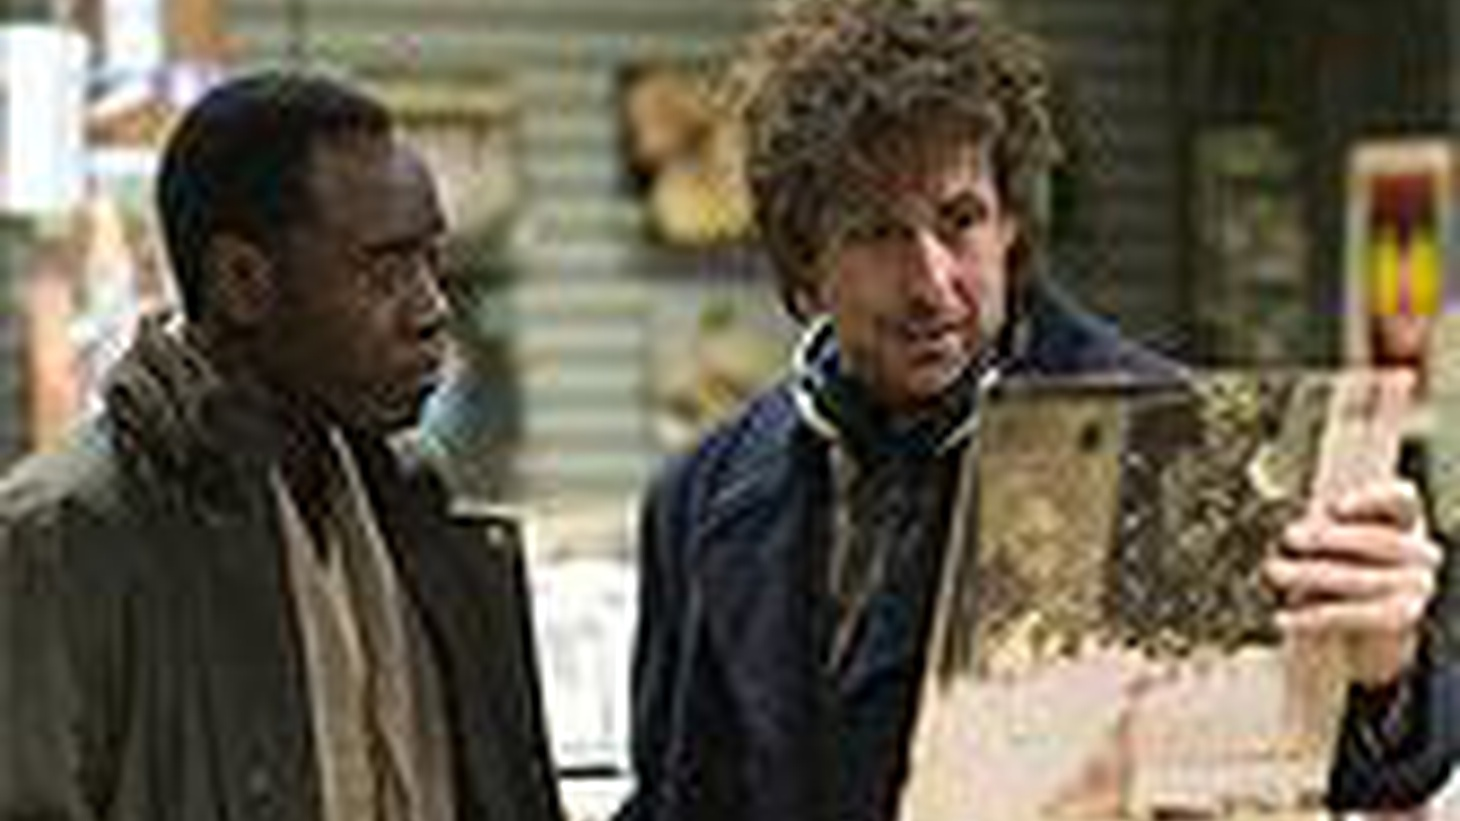 """In the opening scene of """"Reign Over Me,"""" we hear the strains of Graham Nash's """"Simple Man,"""" and see a spectral figure, head encased in huge headphones, buzzing through the streets of nighttime Manhattan on a scooter that looks like a motorized skateboard. The scooterist's name is Charlie Fineman, he's played by Adam Sandler, and he's anything but simple. Like many of Sandler's characters, Charlie boils with rage beneath a placid exterior. The difference here is the source of his distress – his wife and children were on one of the planes that hit the World Trade Center on 9/11, and losing them has turned Charlie, once a successful dentist, into a sort of Rain Man, shut off from the world."""